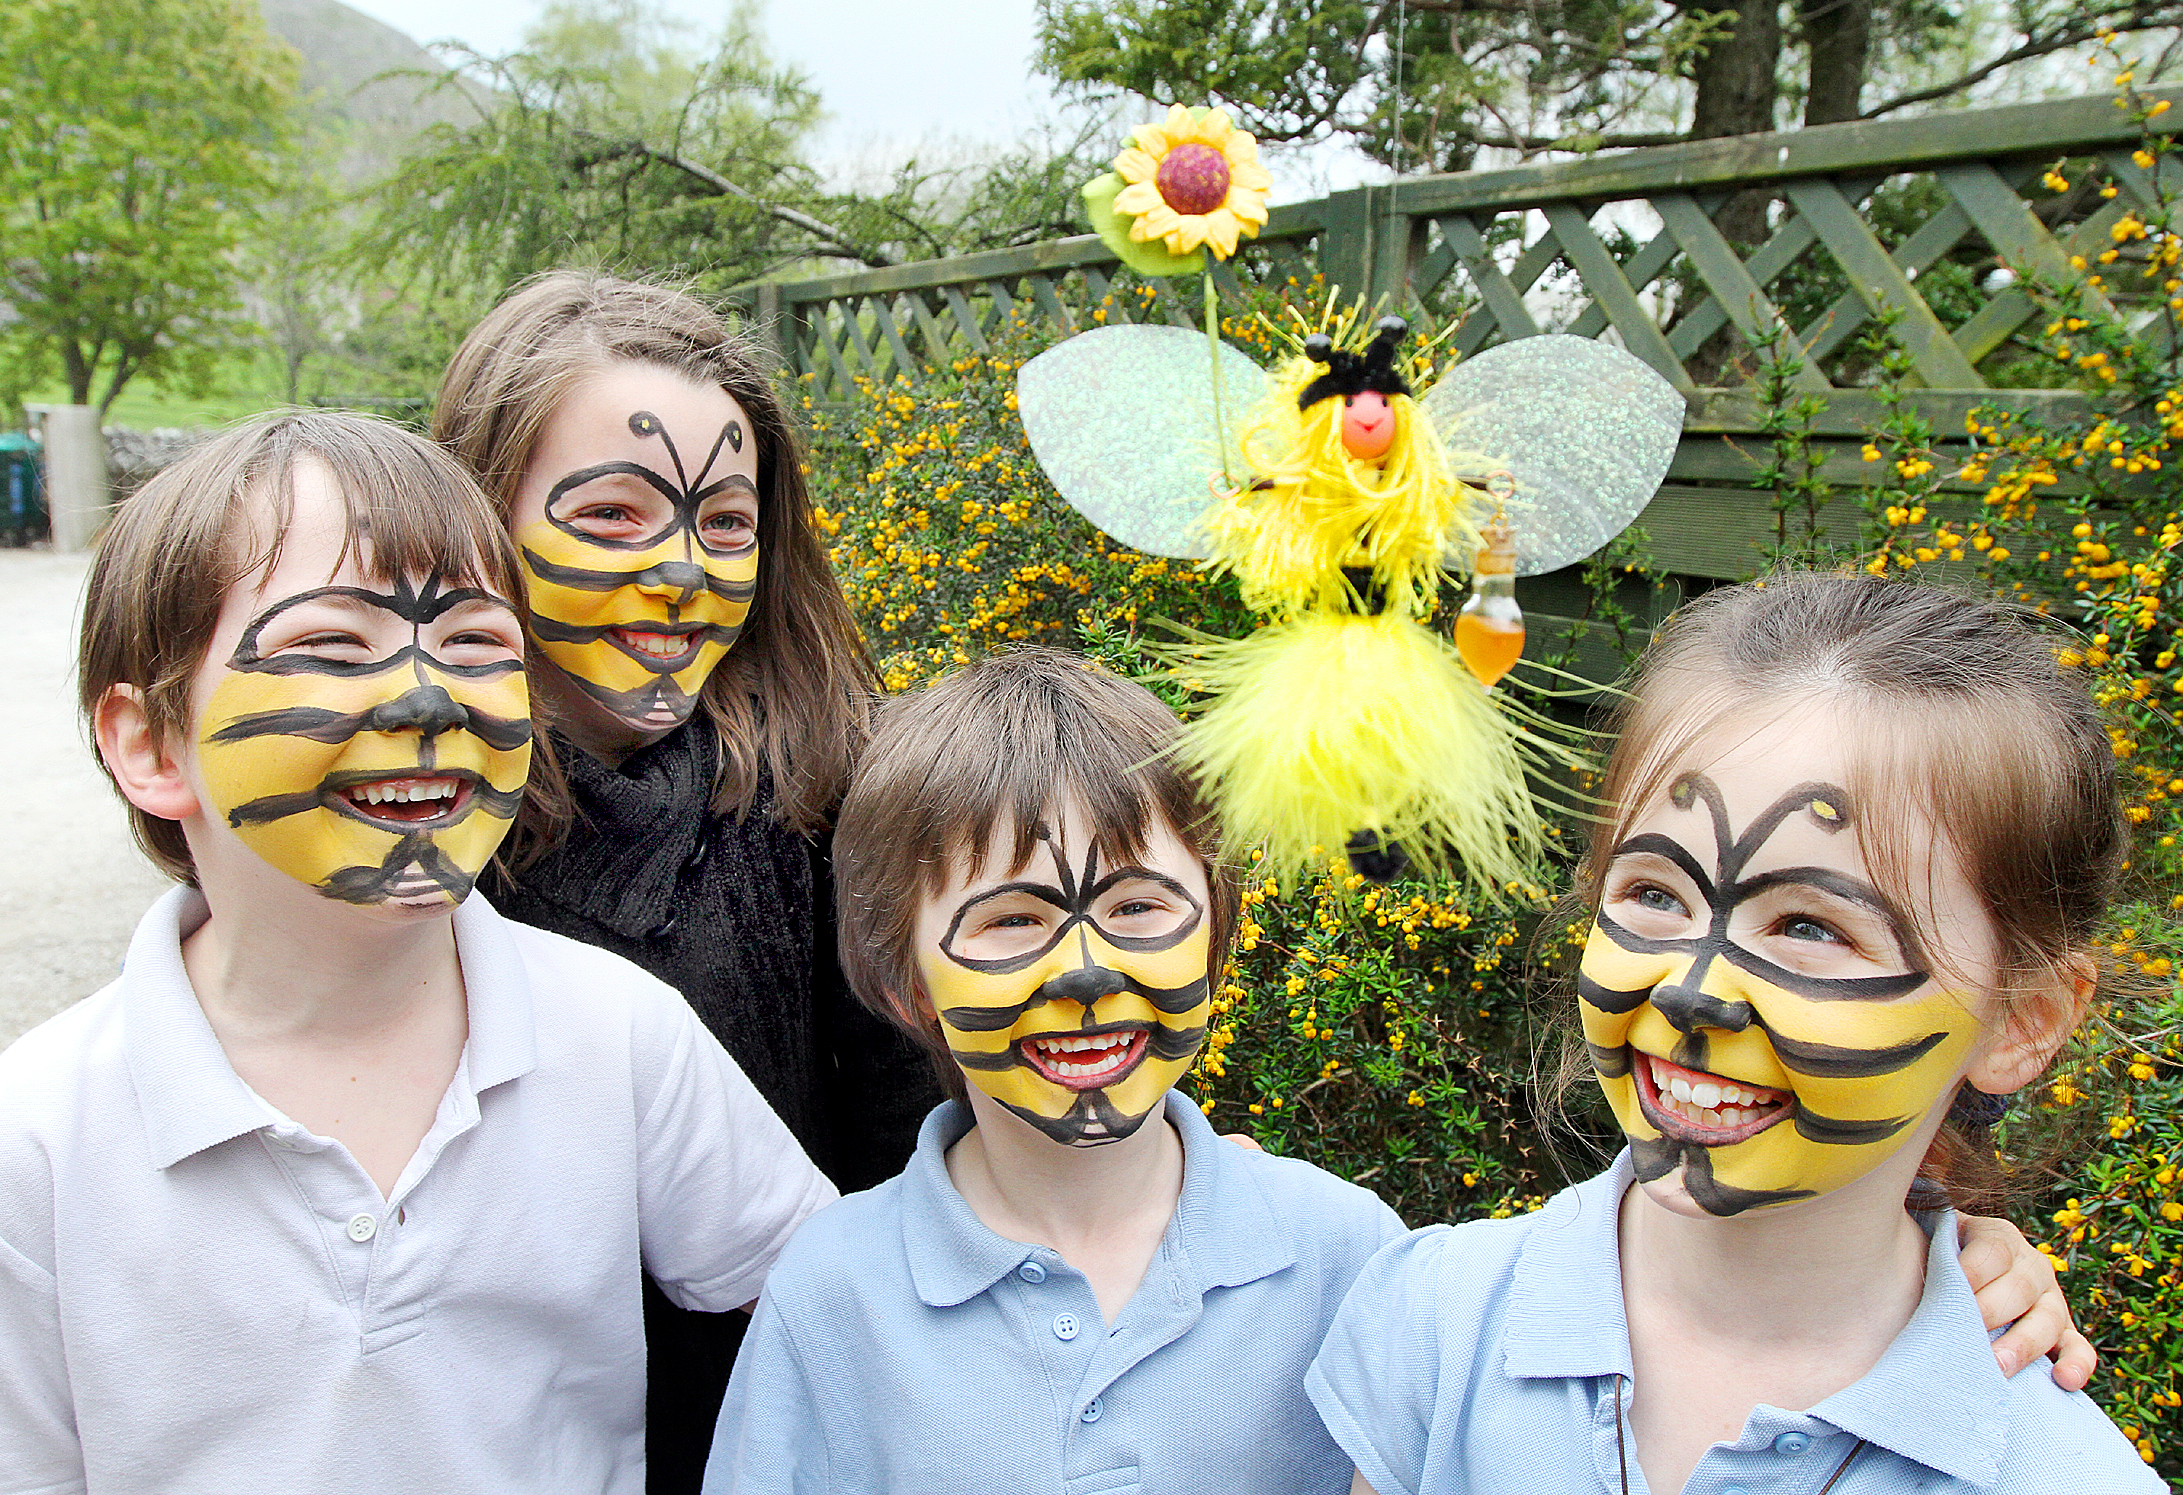 BEE SMART: Lewis Roberts, Ella Shepherd, Oscar McDonough and Courtney McDonough with their face painted as bees for Life is Sweet, a family event at Kilnsey Park where people foun